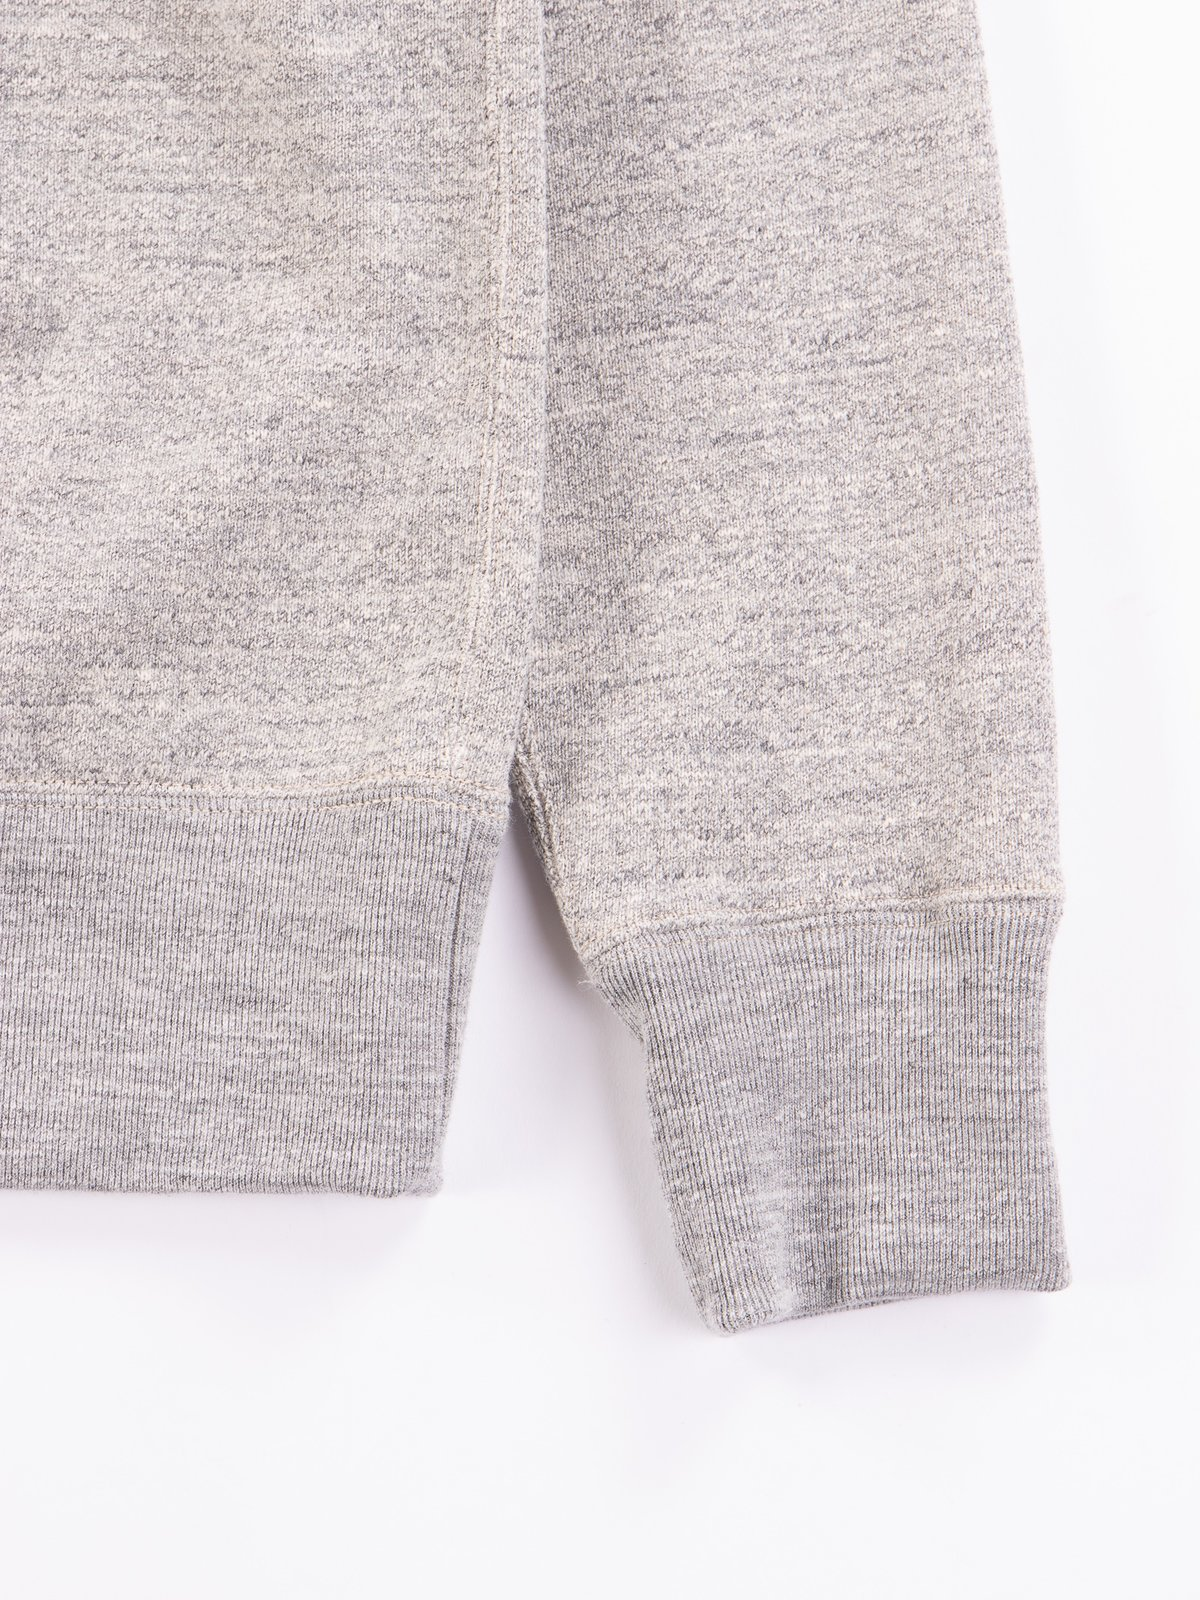 Heather Grey GG Crewneck Sweat - Image 4